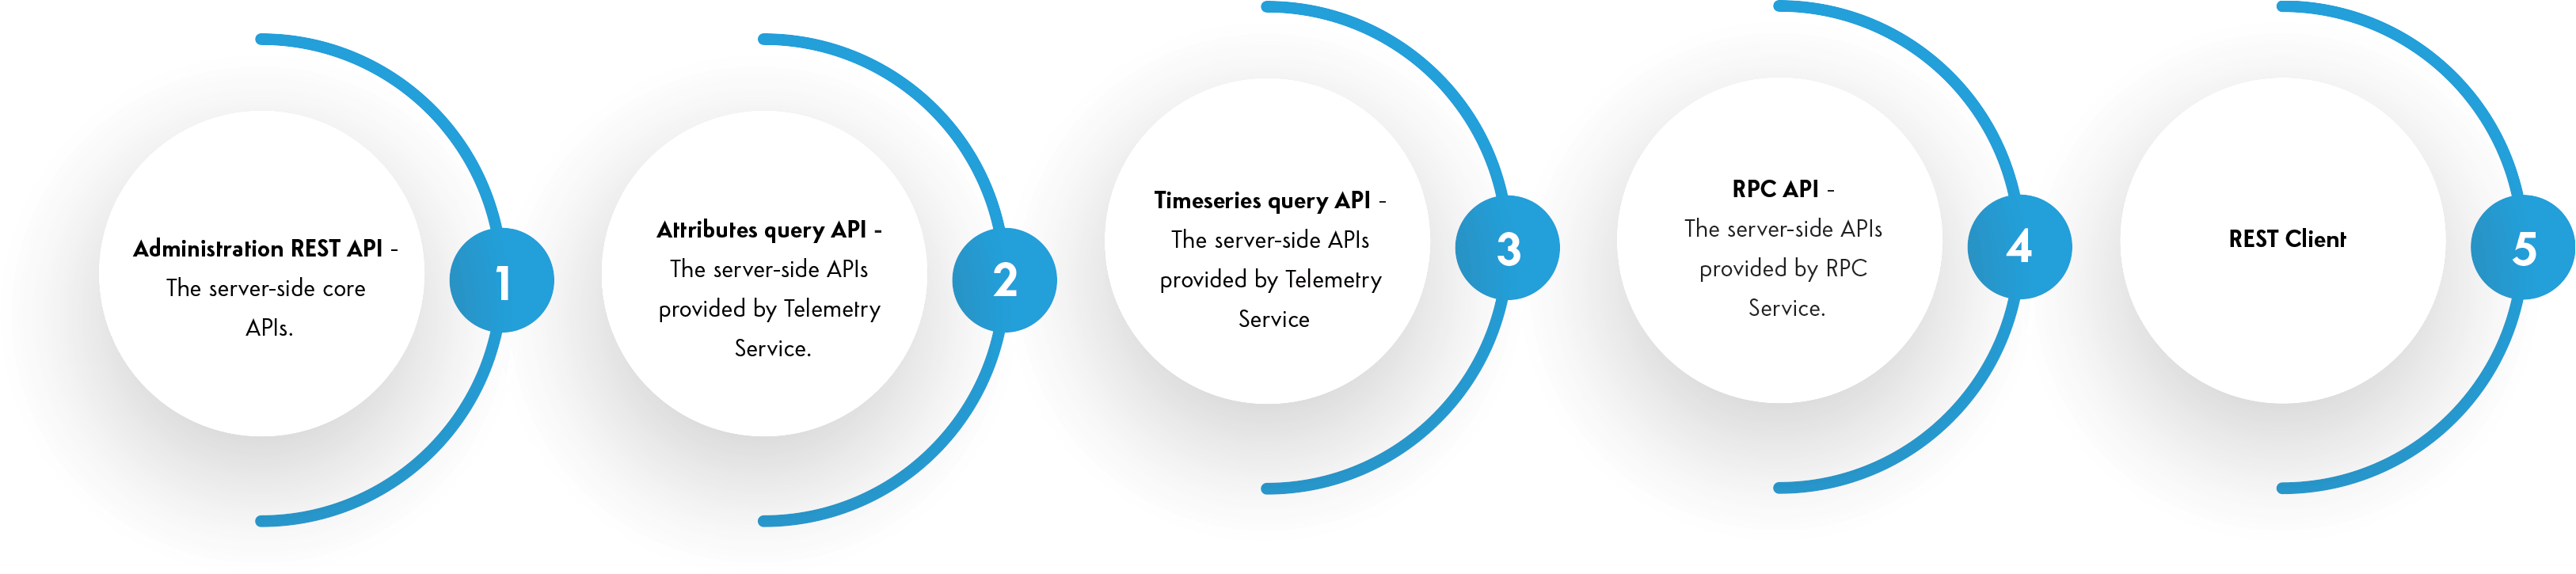 Server-side APIs are available as REST API